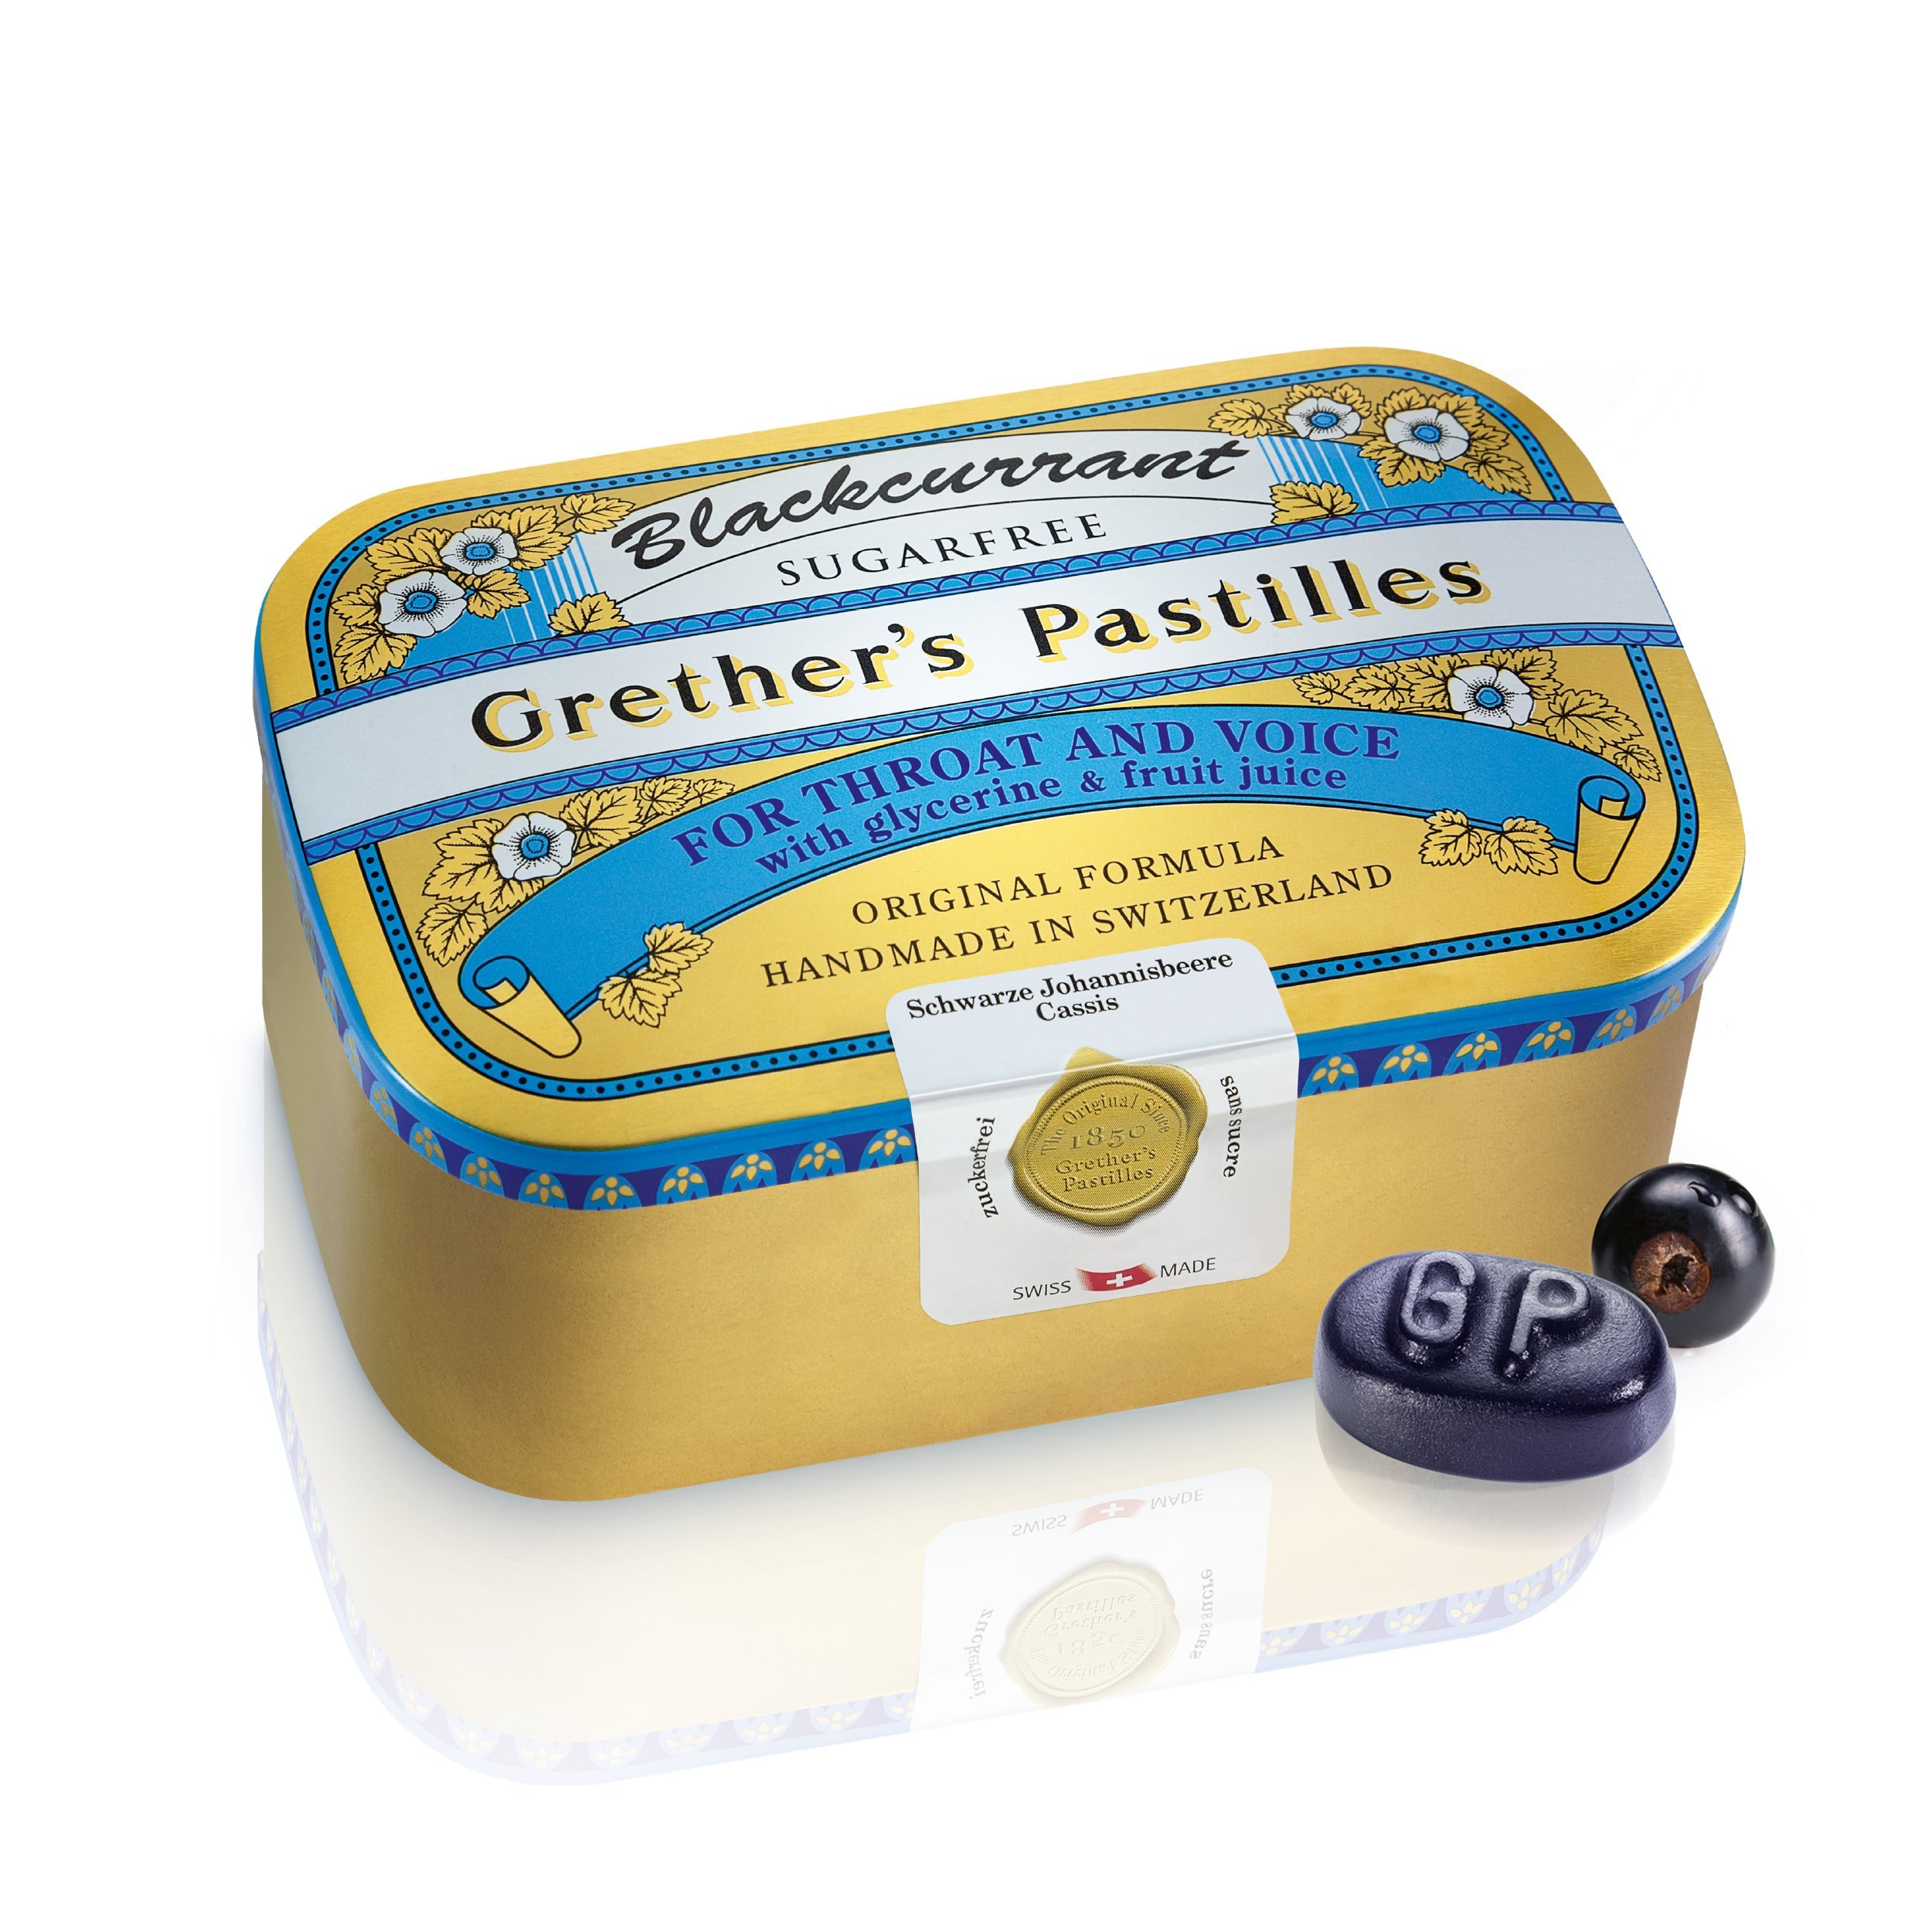 Grether's Blackcurrant Sugarfree Pastilles 15 Ounces / 440 Grams - Handmade in Switzerland by GRETHER'S